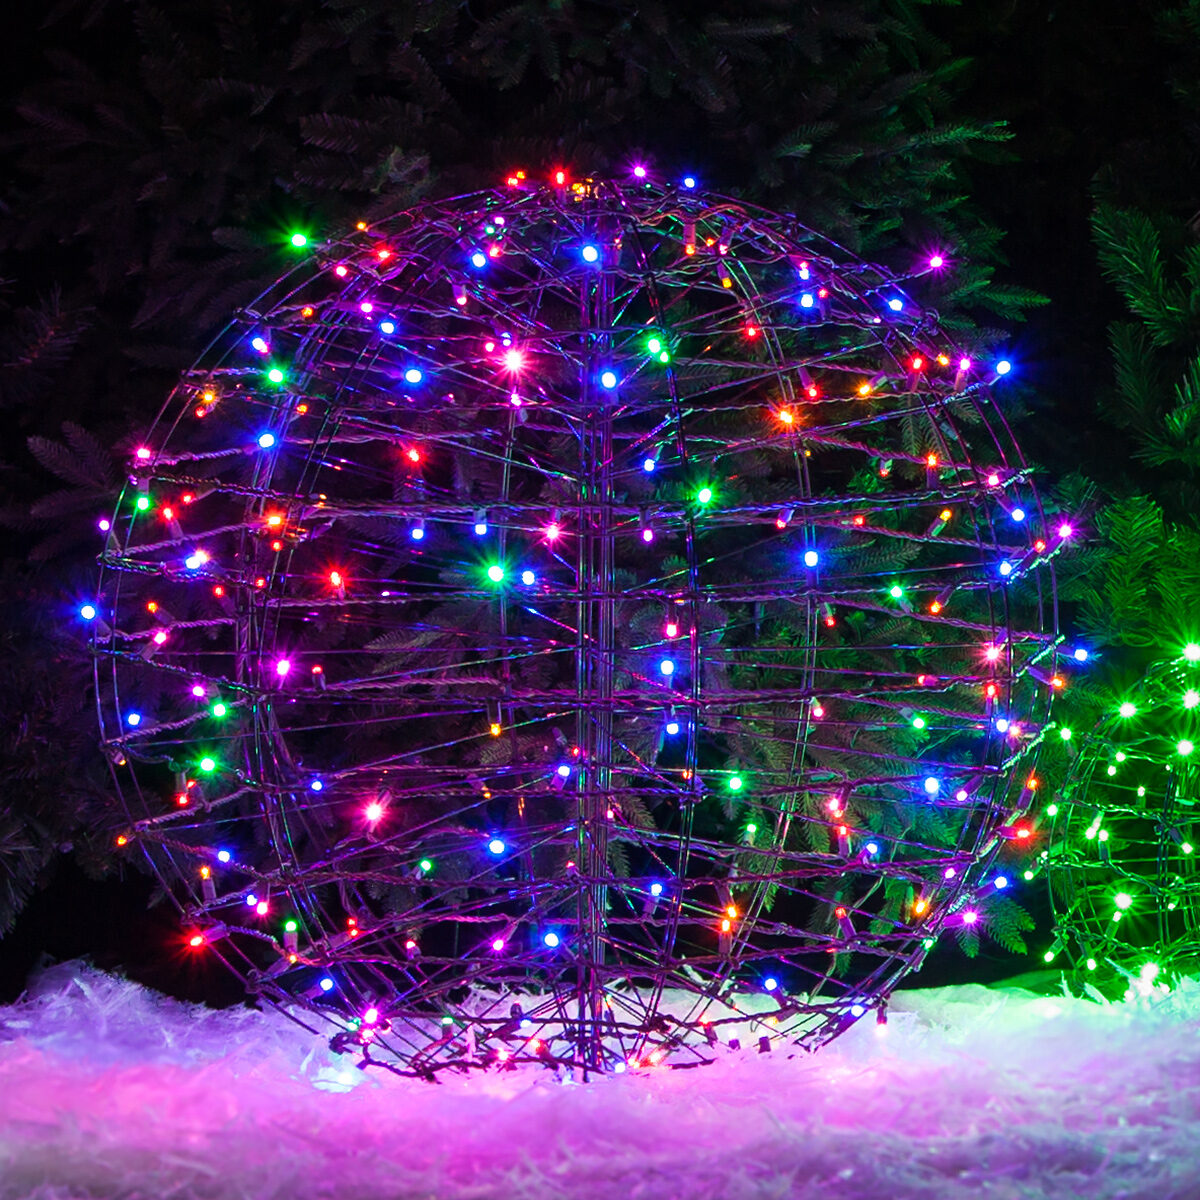 lights no outdoor - 28 images - outdoor decorating ideas yard envy, outdoor string lights no ...